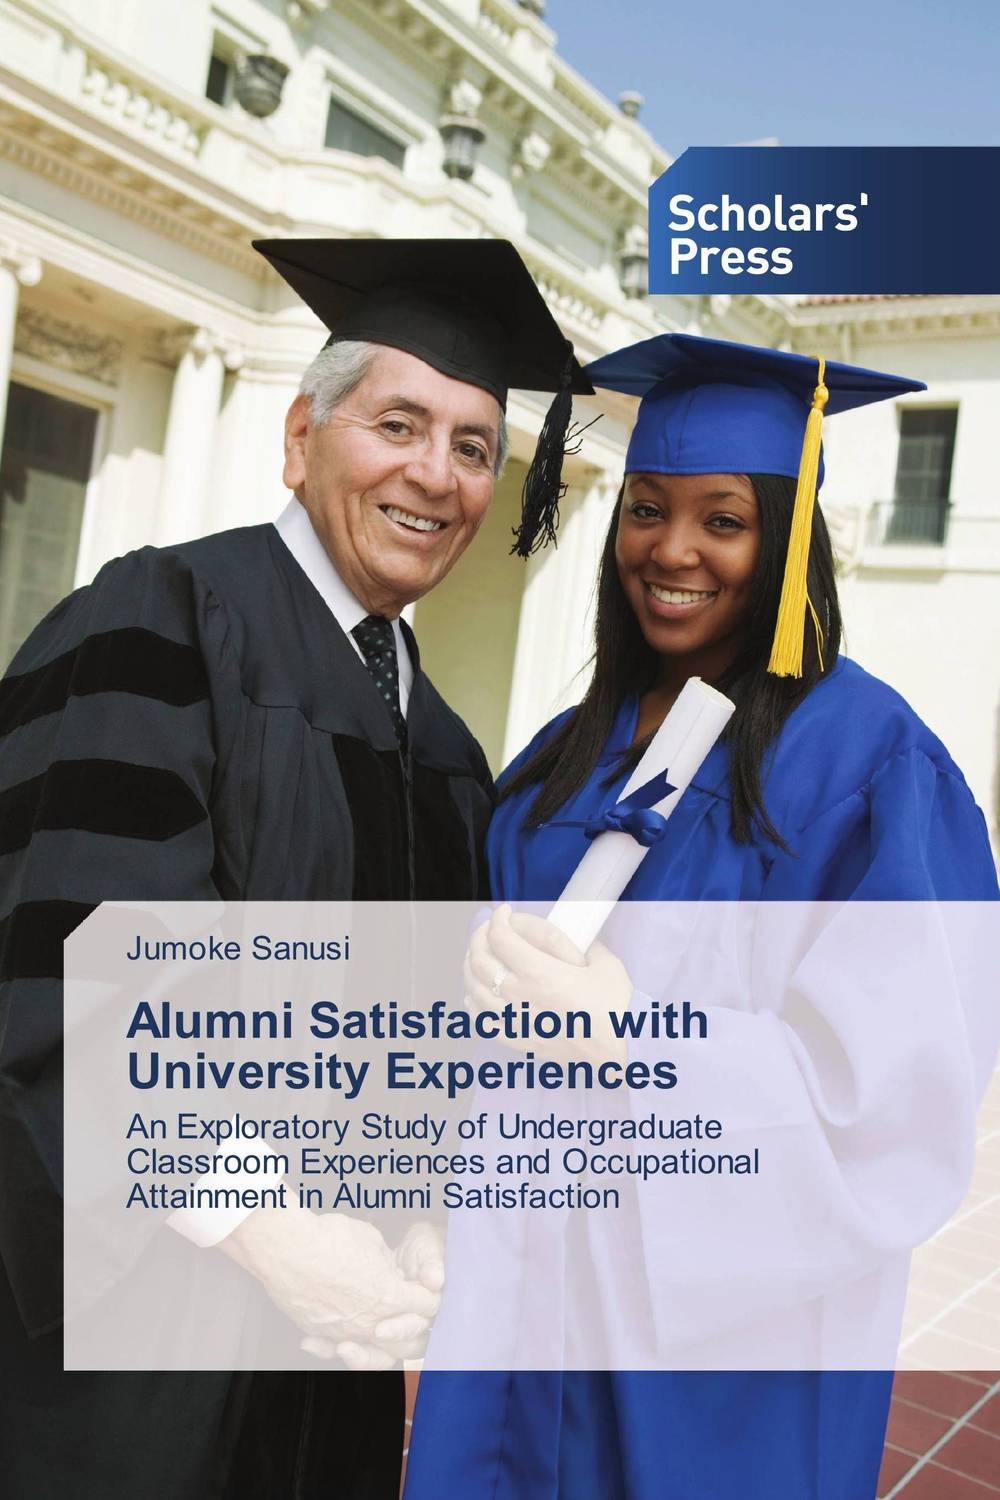 Alumni Satisfaction with University Experiences the salmon who dared to leap higher